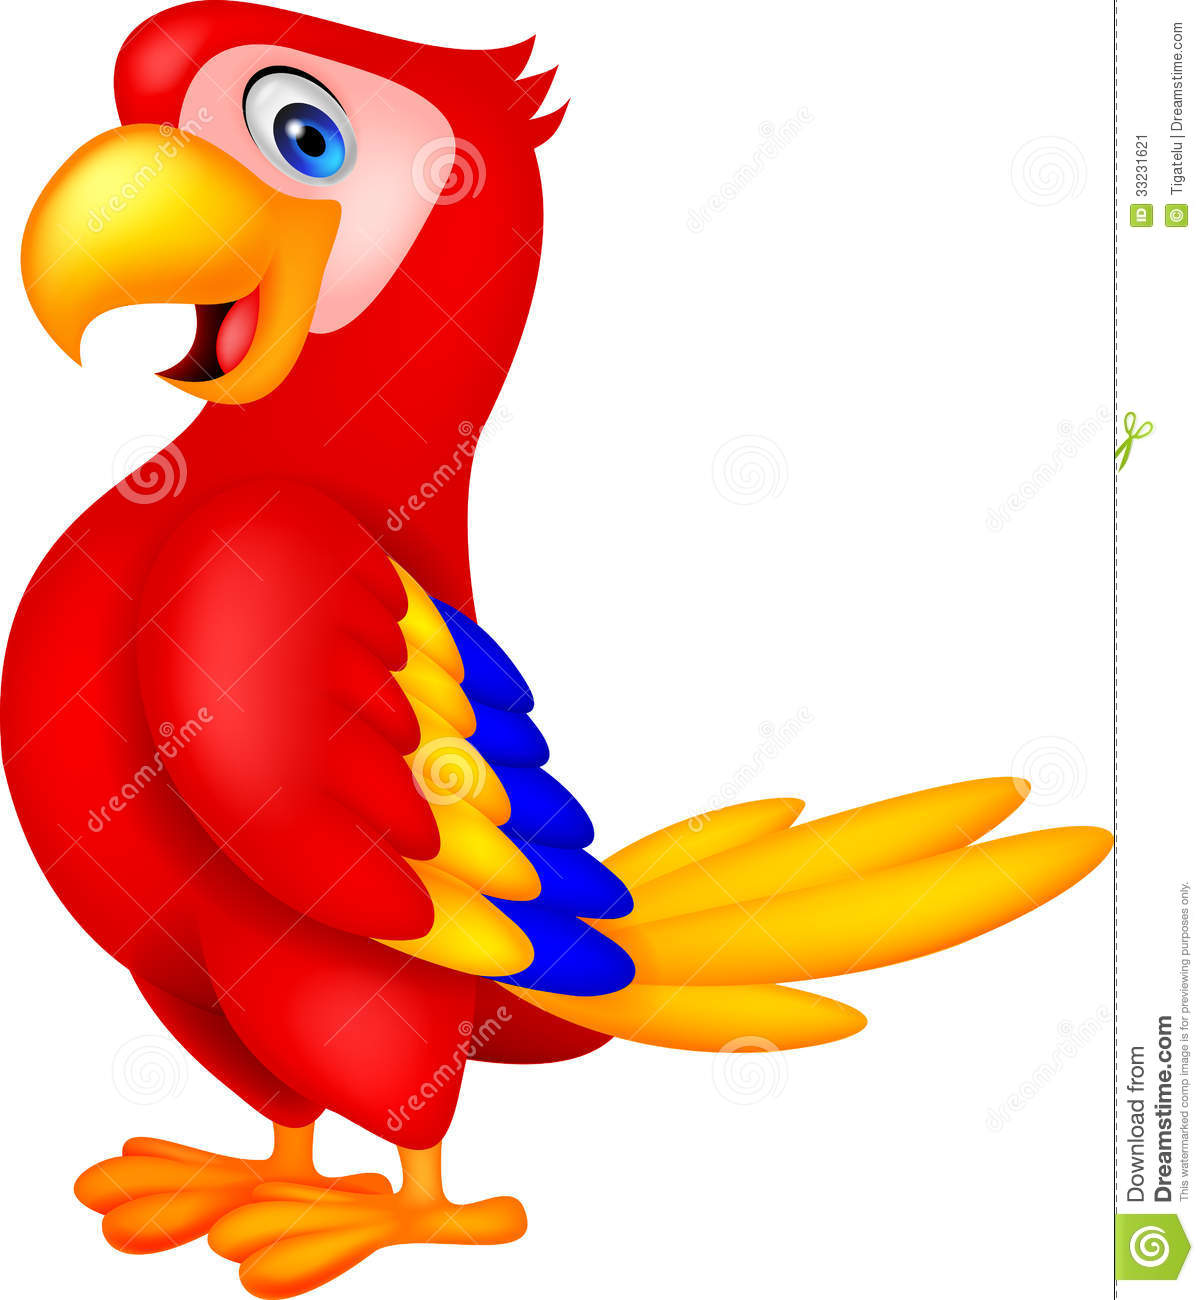 African Parrot clipart #12, Download drawings